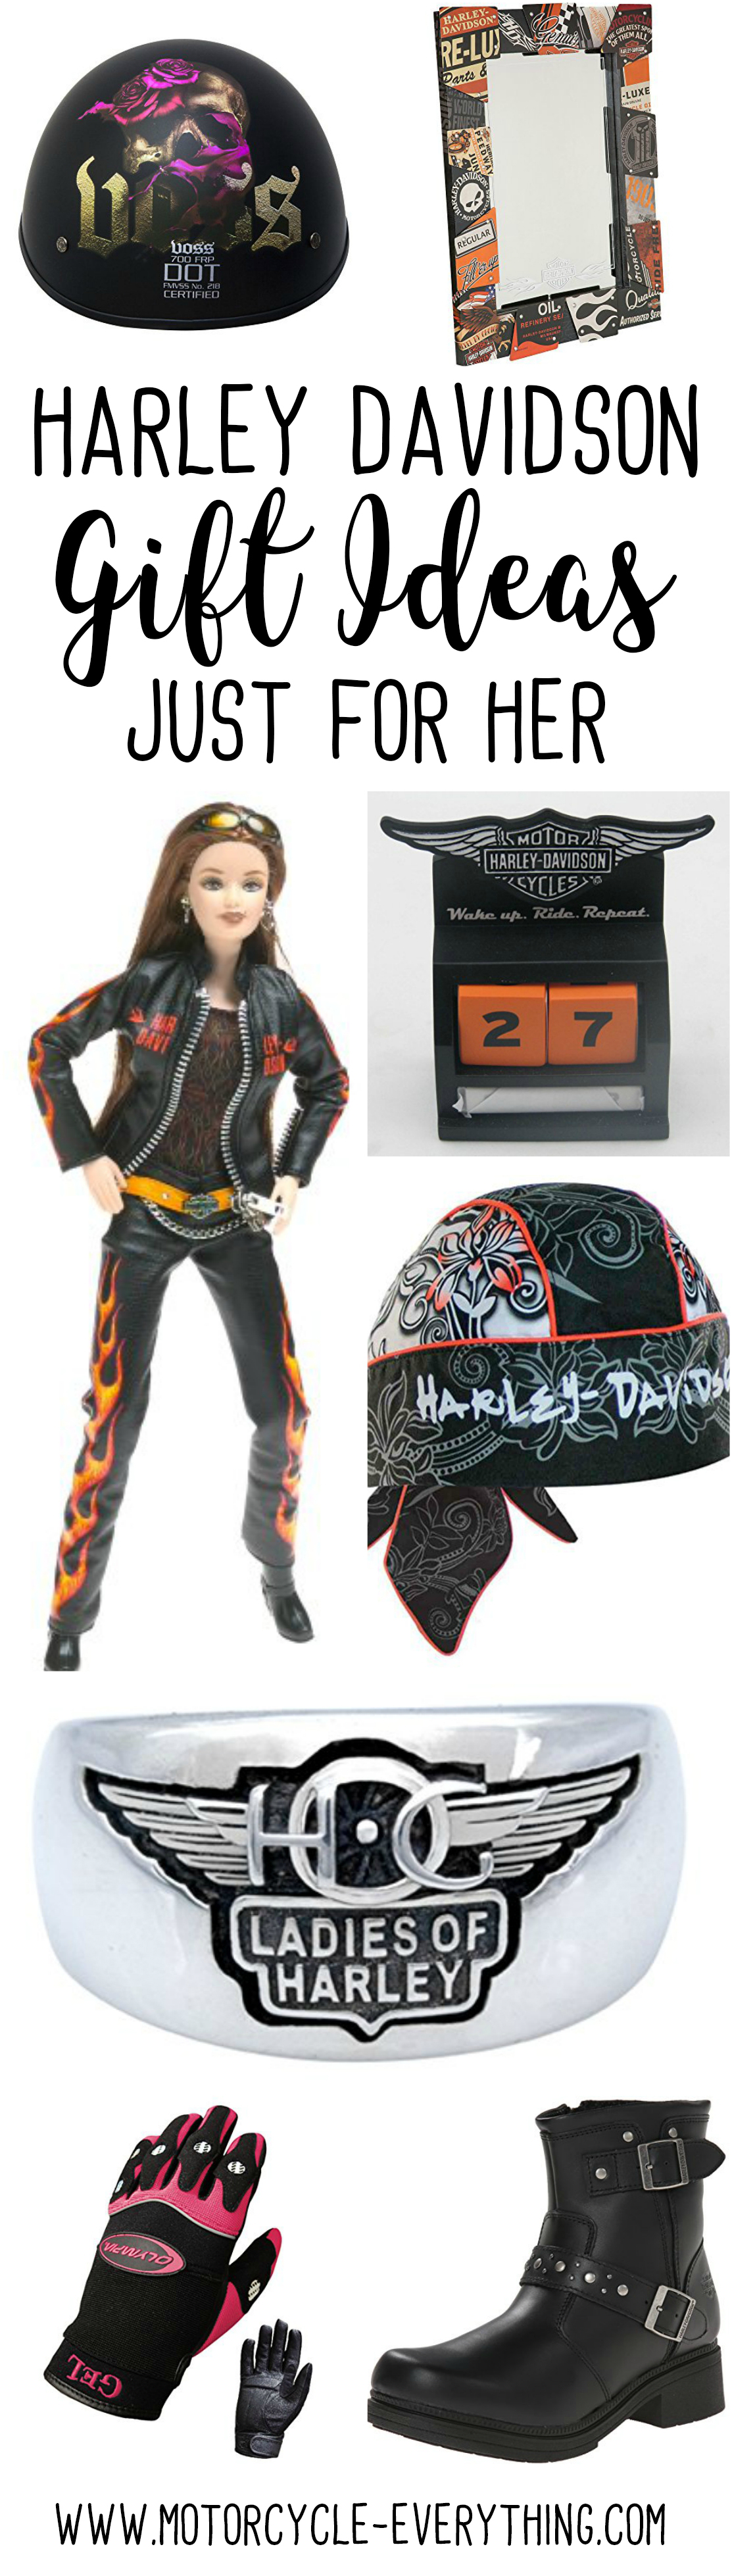 Amazing Harley Davidson Gifts for Her